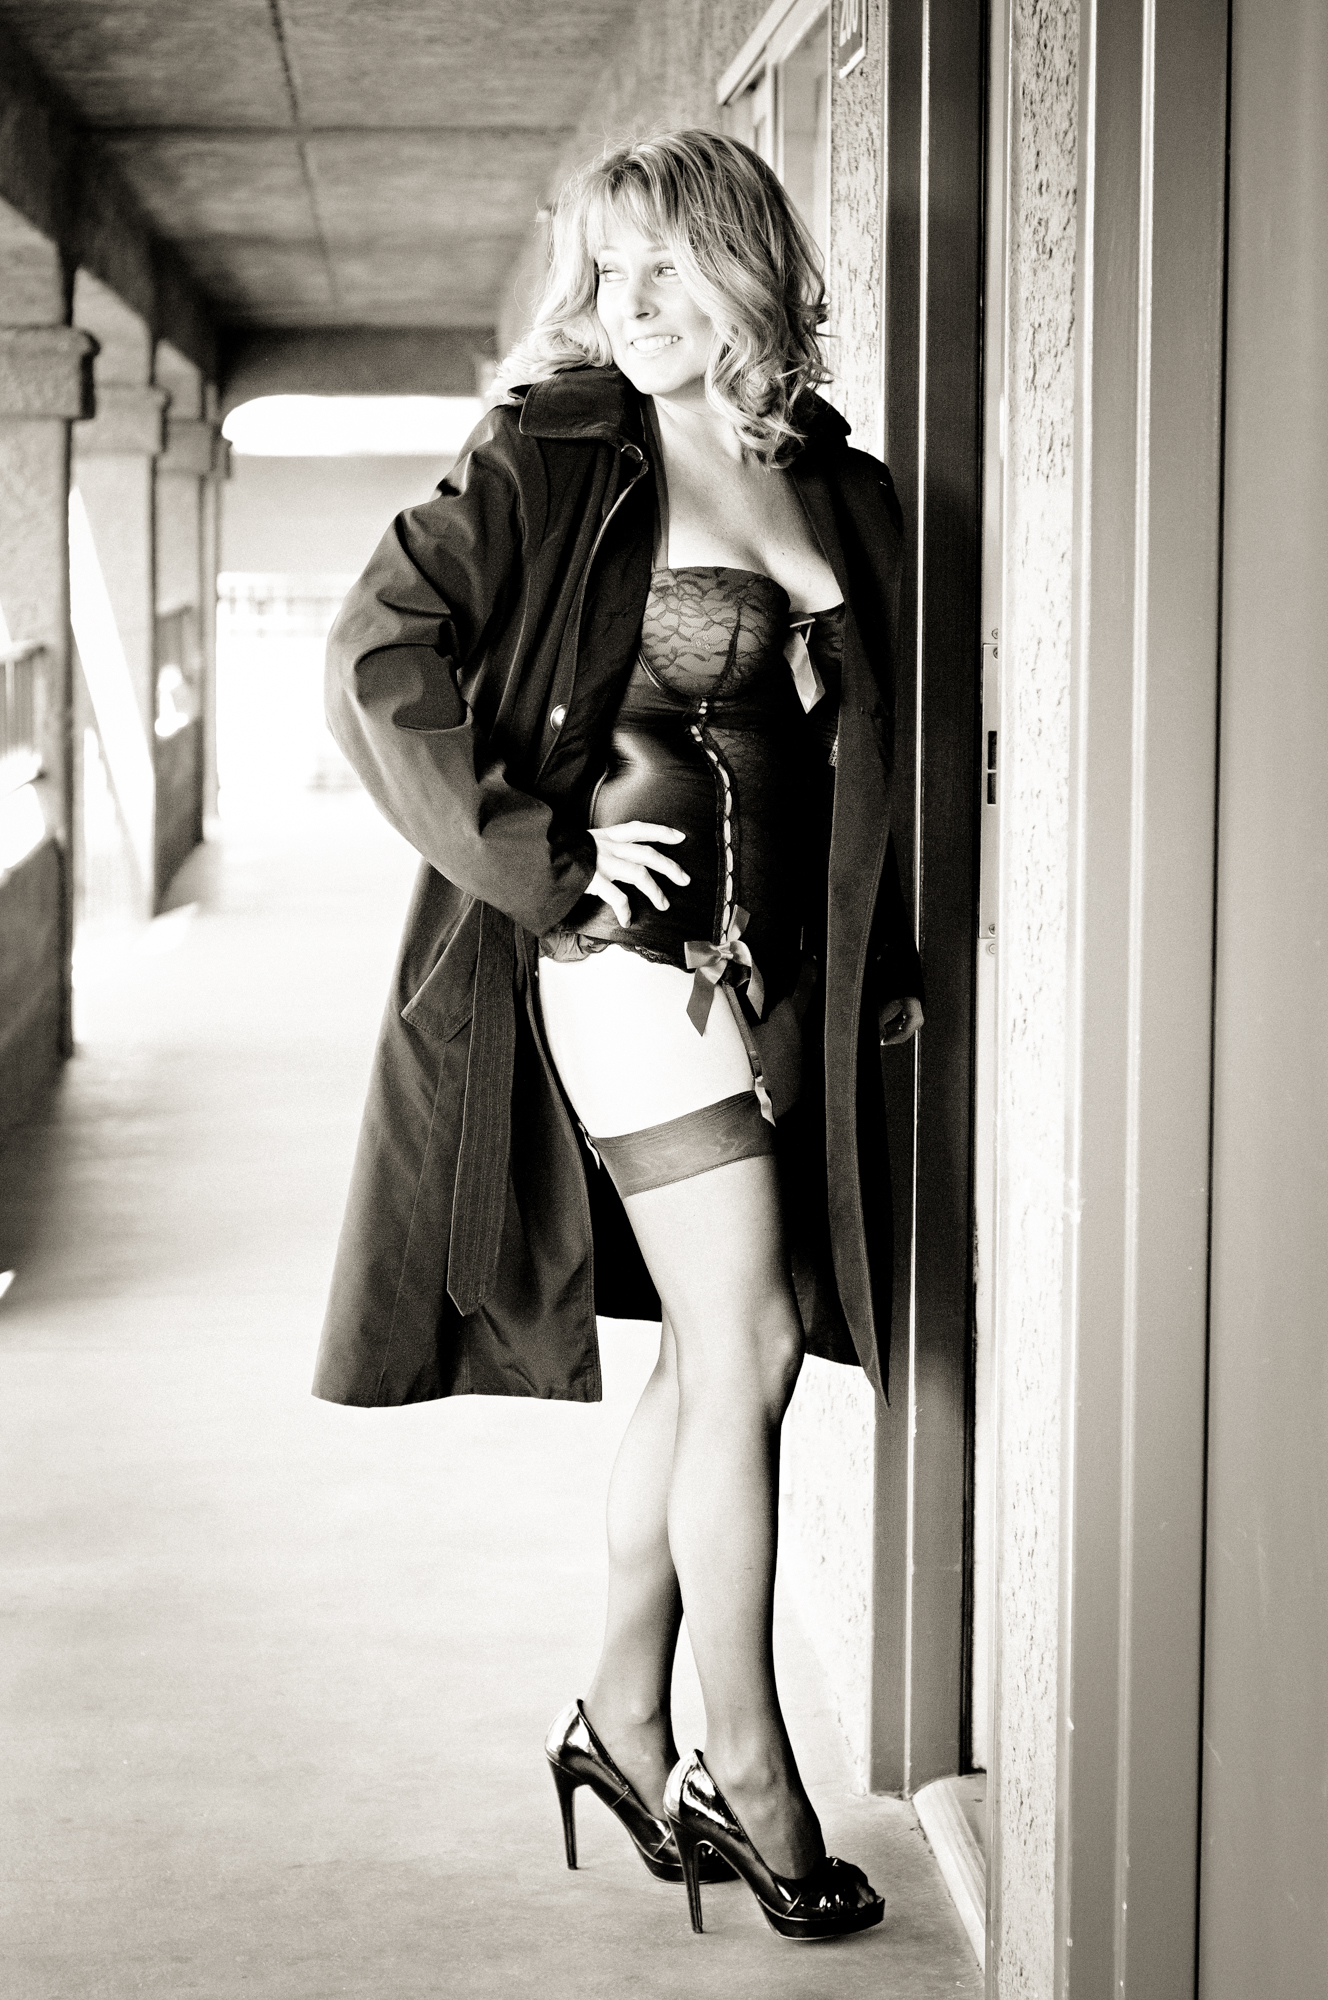 This photo is of a mature woman stepping into a hotel room as part of a boudoir photography session by Dana Sipper. Classic lingerie and a trench coat add to the sexiness of the photo.